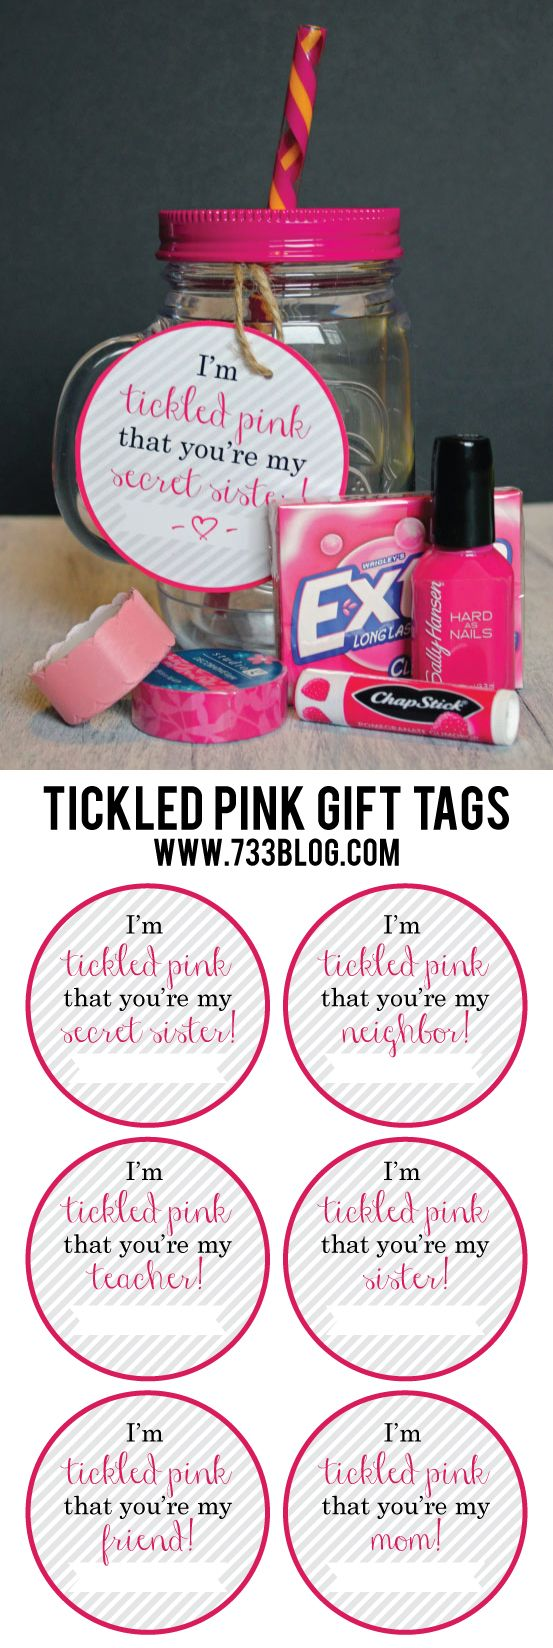 Tickled Pink Gift Idea with Free Printable Gift Tags for Mom, Teachers, Sisters and More!